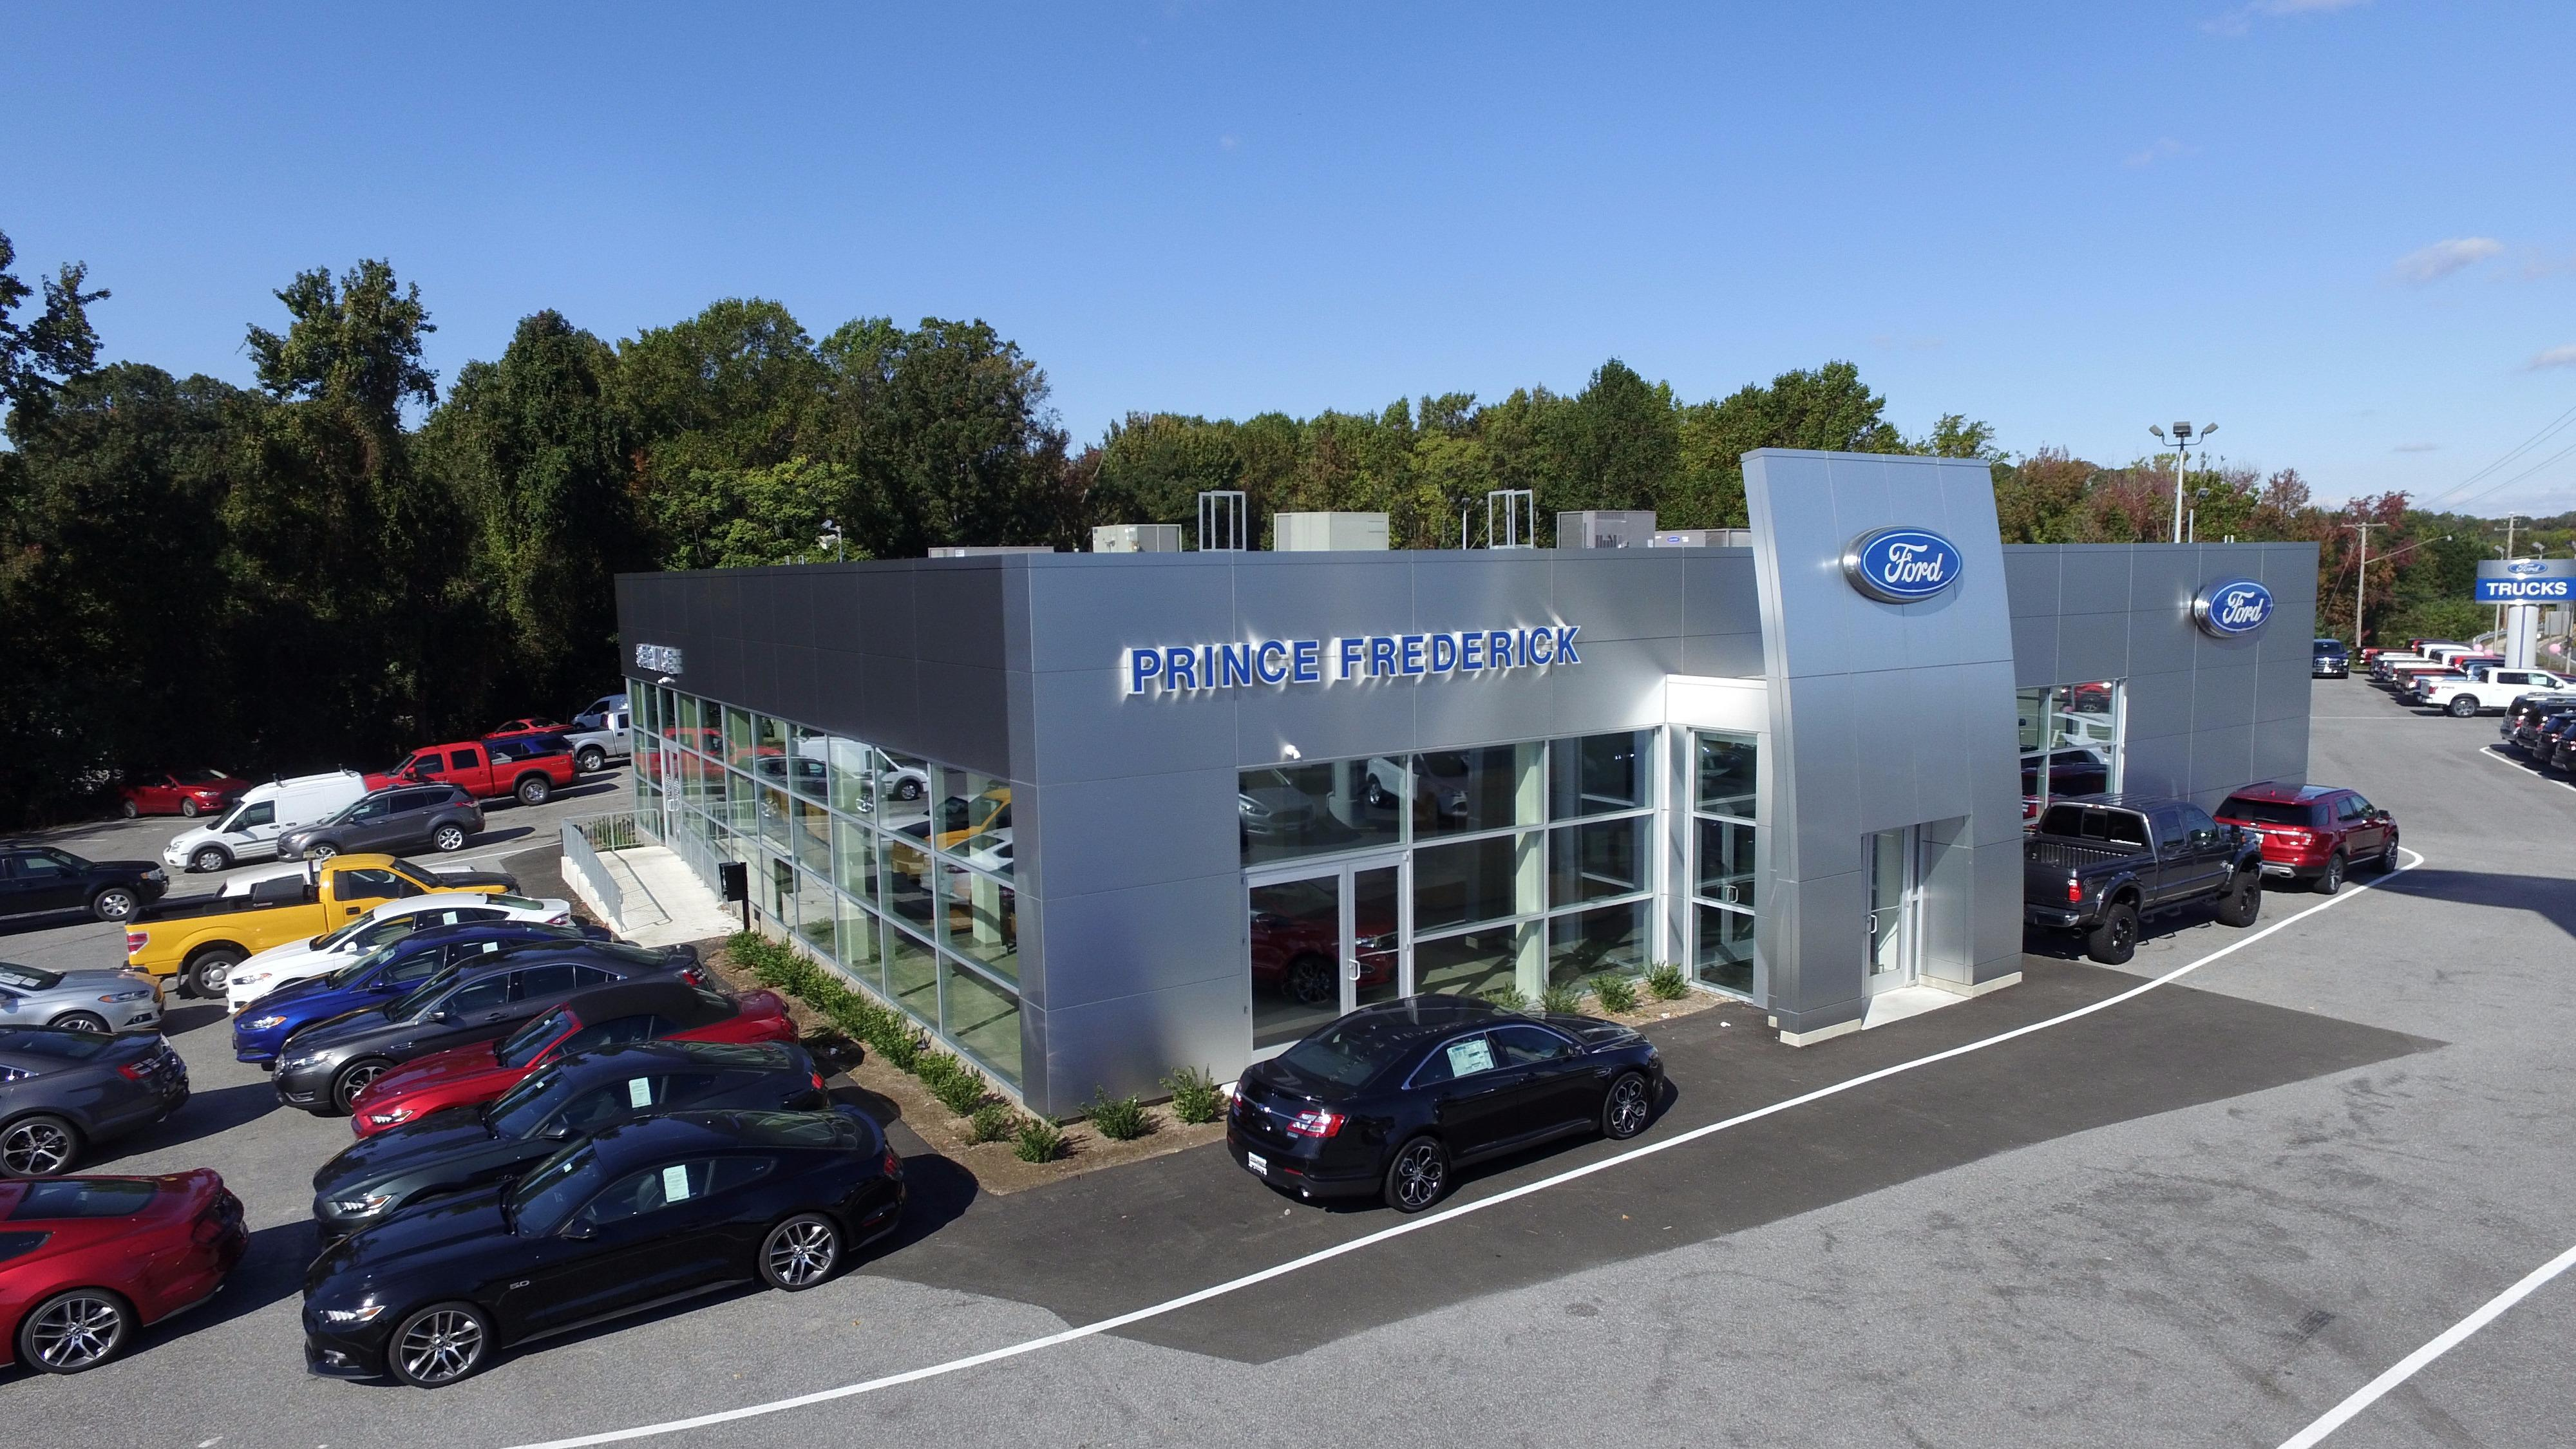 Car Dealer in MD Prince Frederick 20678 Prince Frederick Ford 10 Solomon's Island Road  (410)535-0900